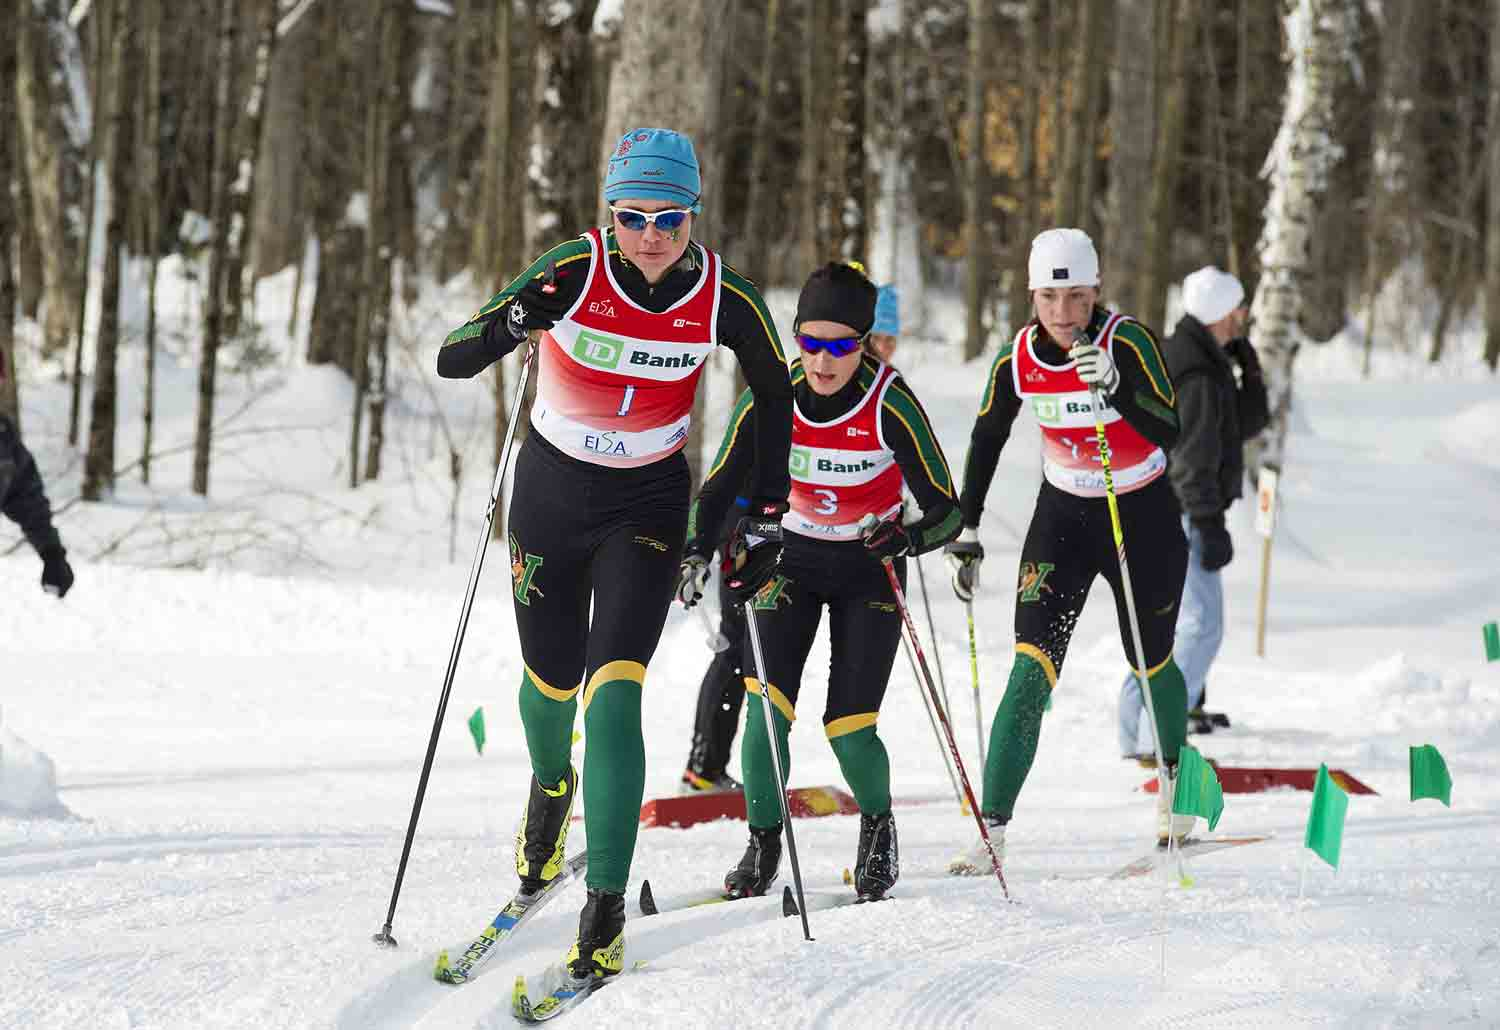 UVM ladies Patterson, Glen and Garrec en route to podium sweep at UVM Carnival. Credit: Ellen and Dennis Curran